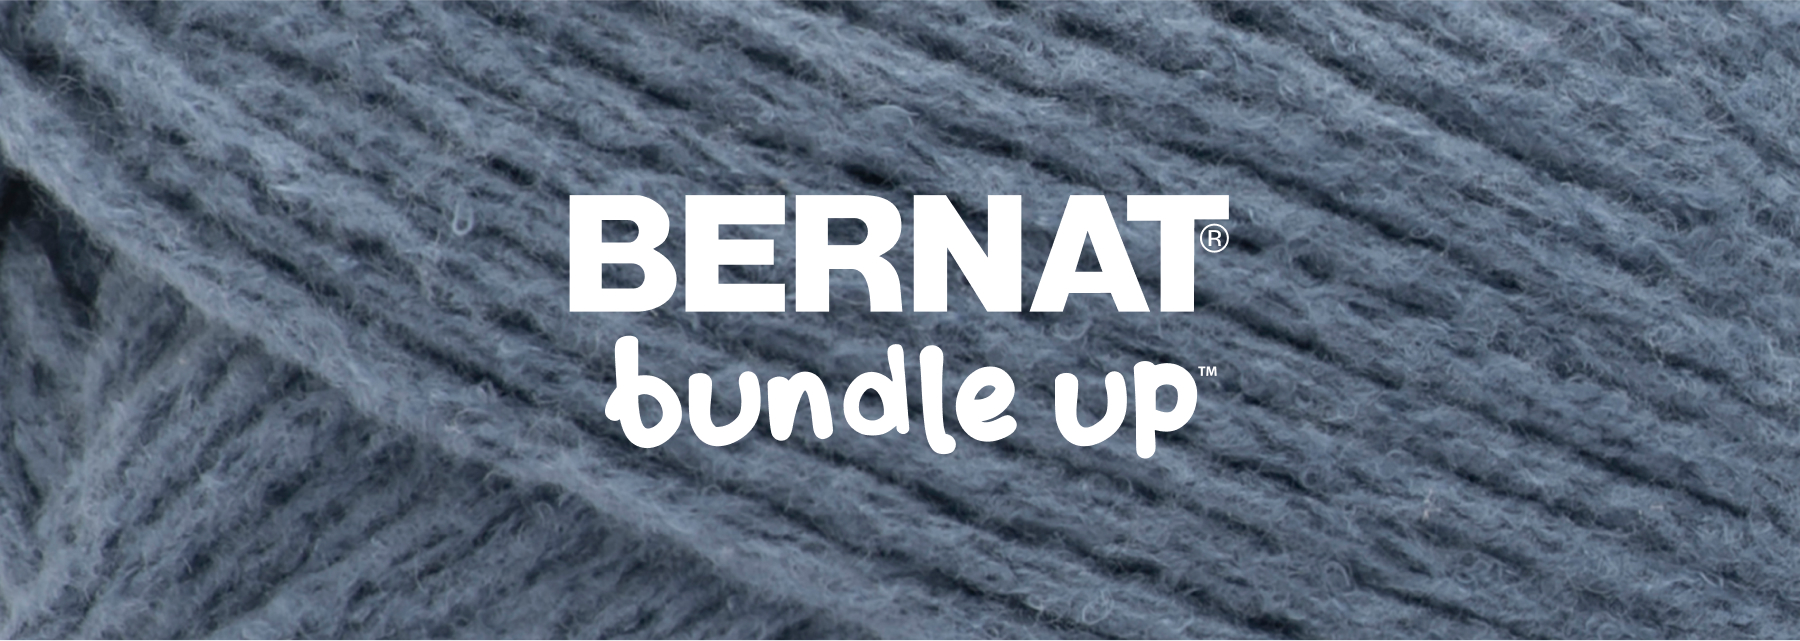 Bernat Bundle up